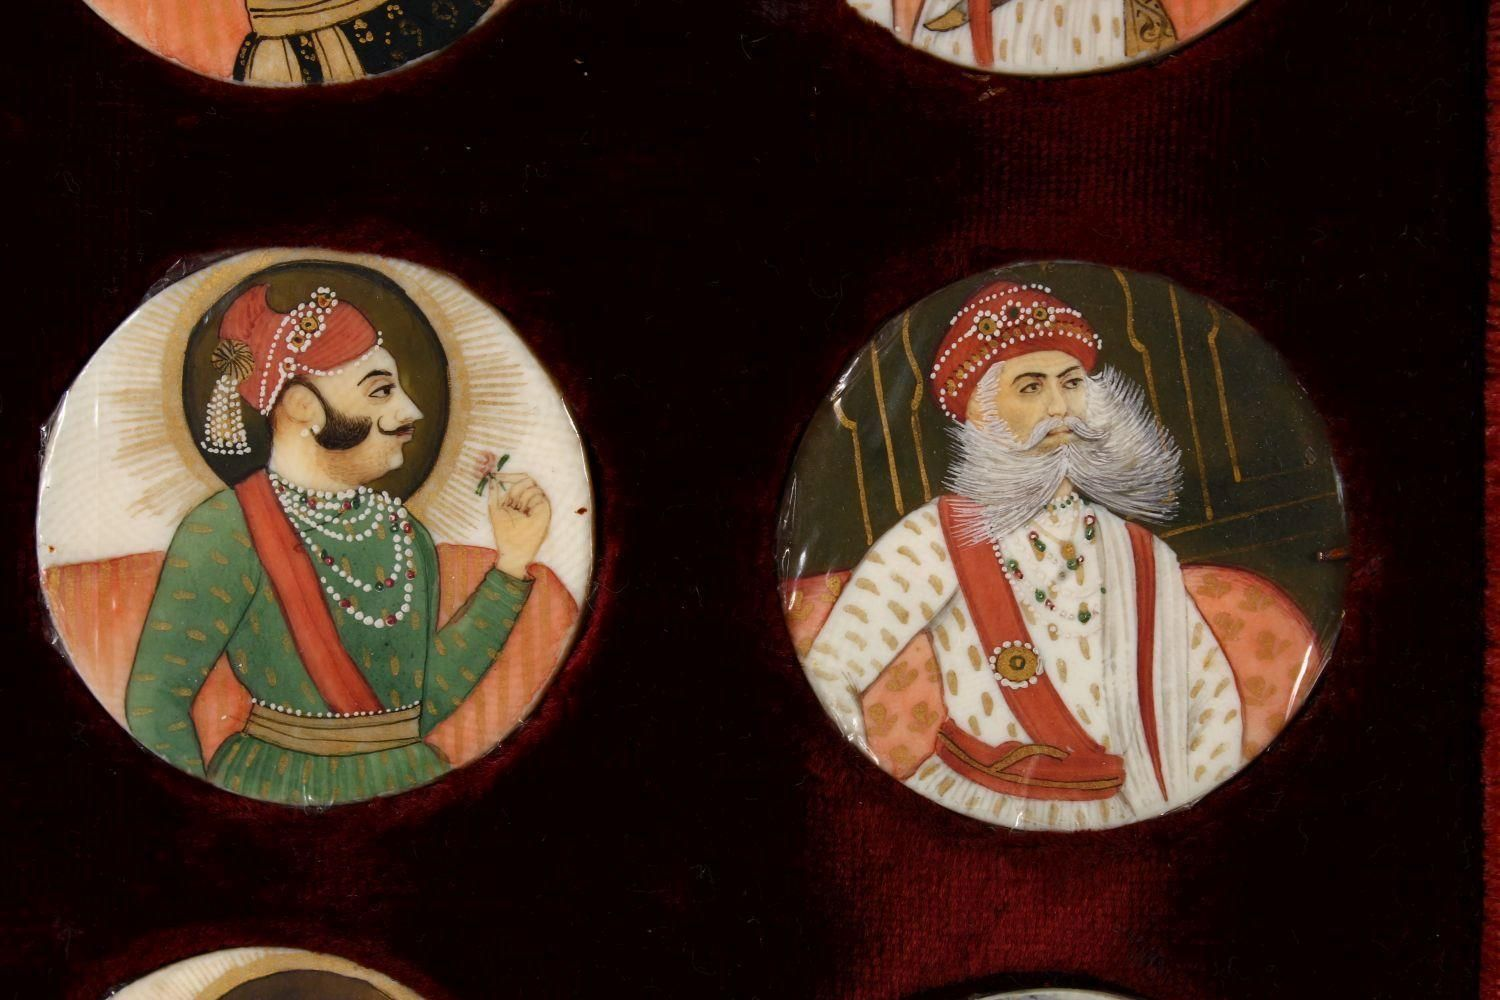 A BOXED SET OF THIRTEEN 18TH/19TH CENTURY PERSIAN CARVED & PAINTED IVORY MINIATURES, each of the - Image 7 of 10